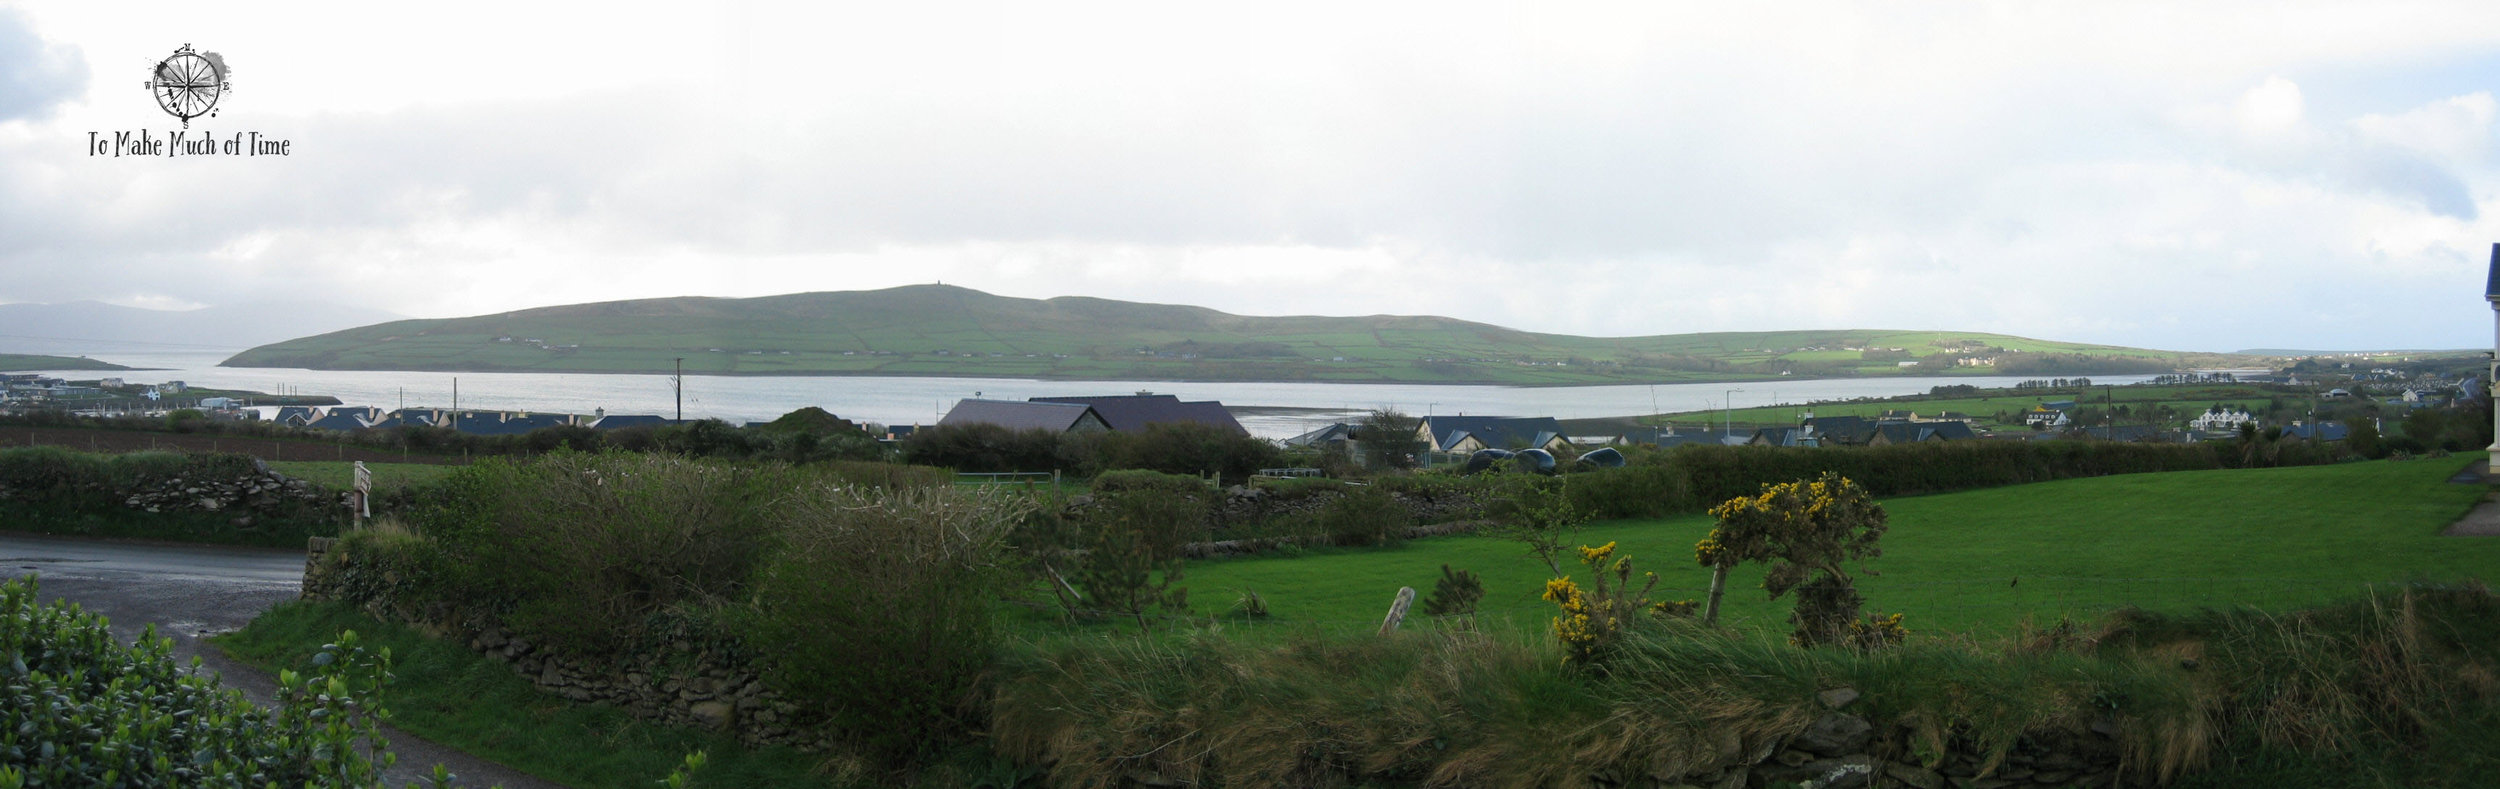 Donegal Ireland | Bay | To Make Much of Time